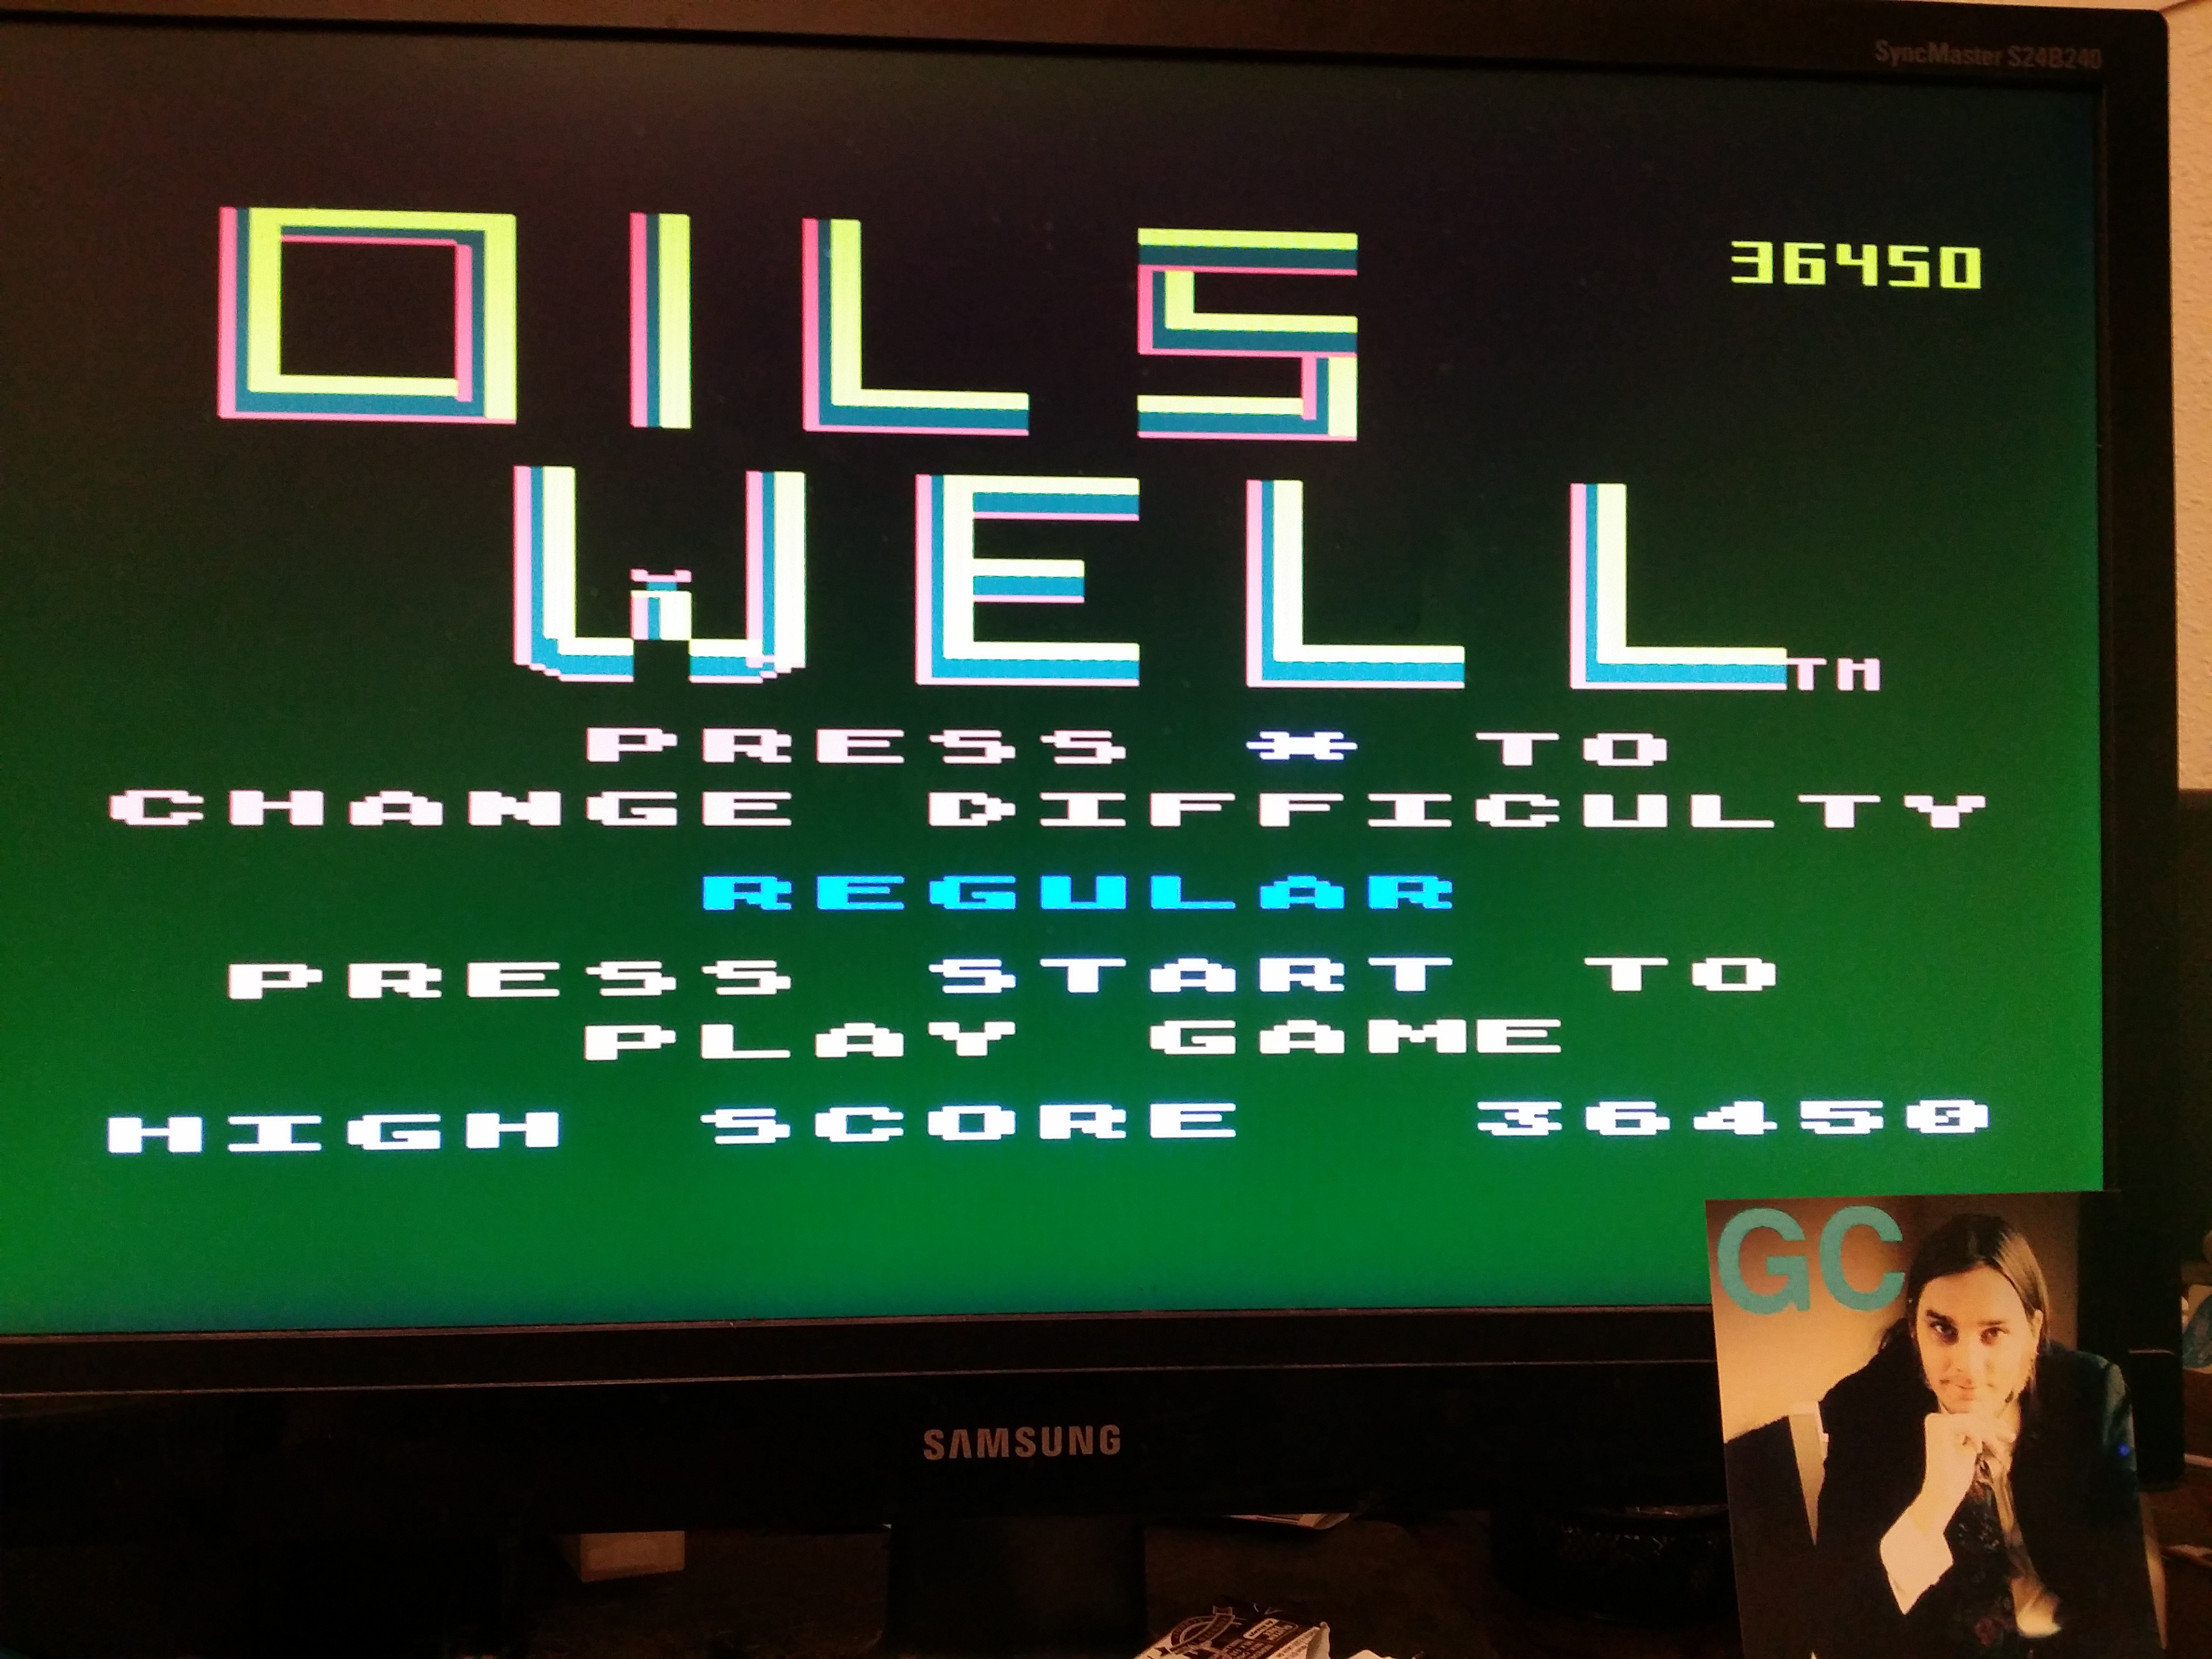 glenncase: Oils Well (Atari 5200 Emulated) 36,450 points on 2014-11-16 23:57:56